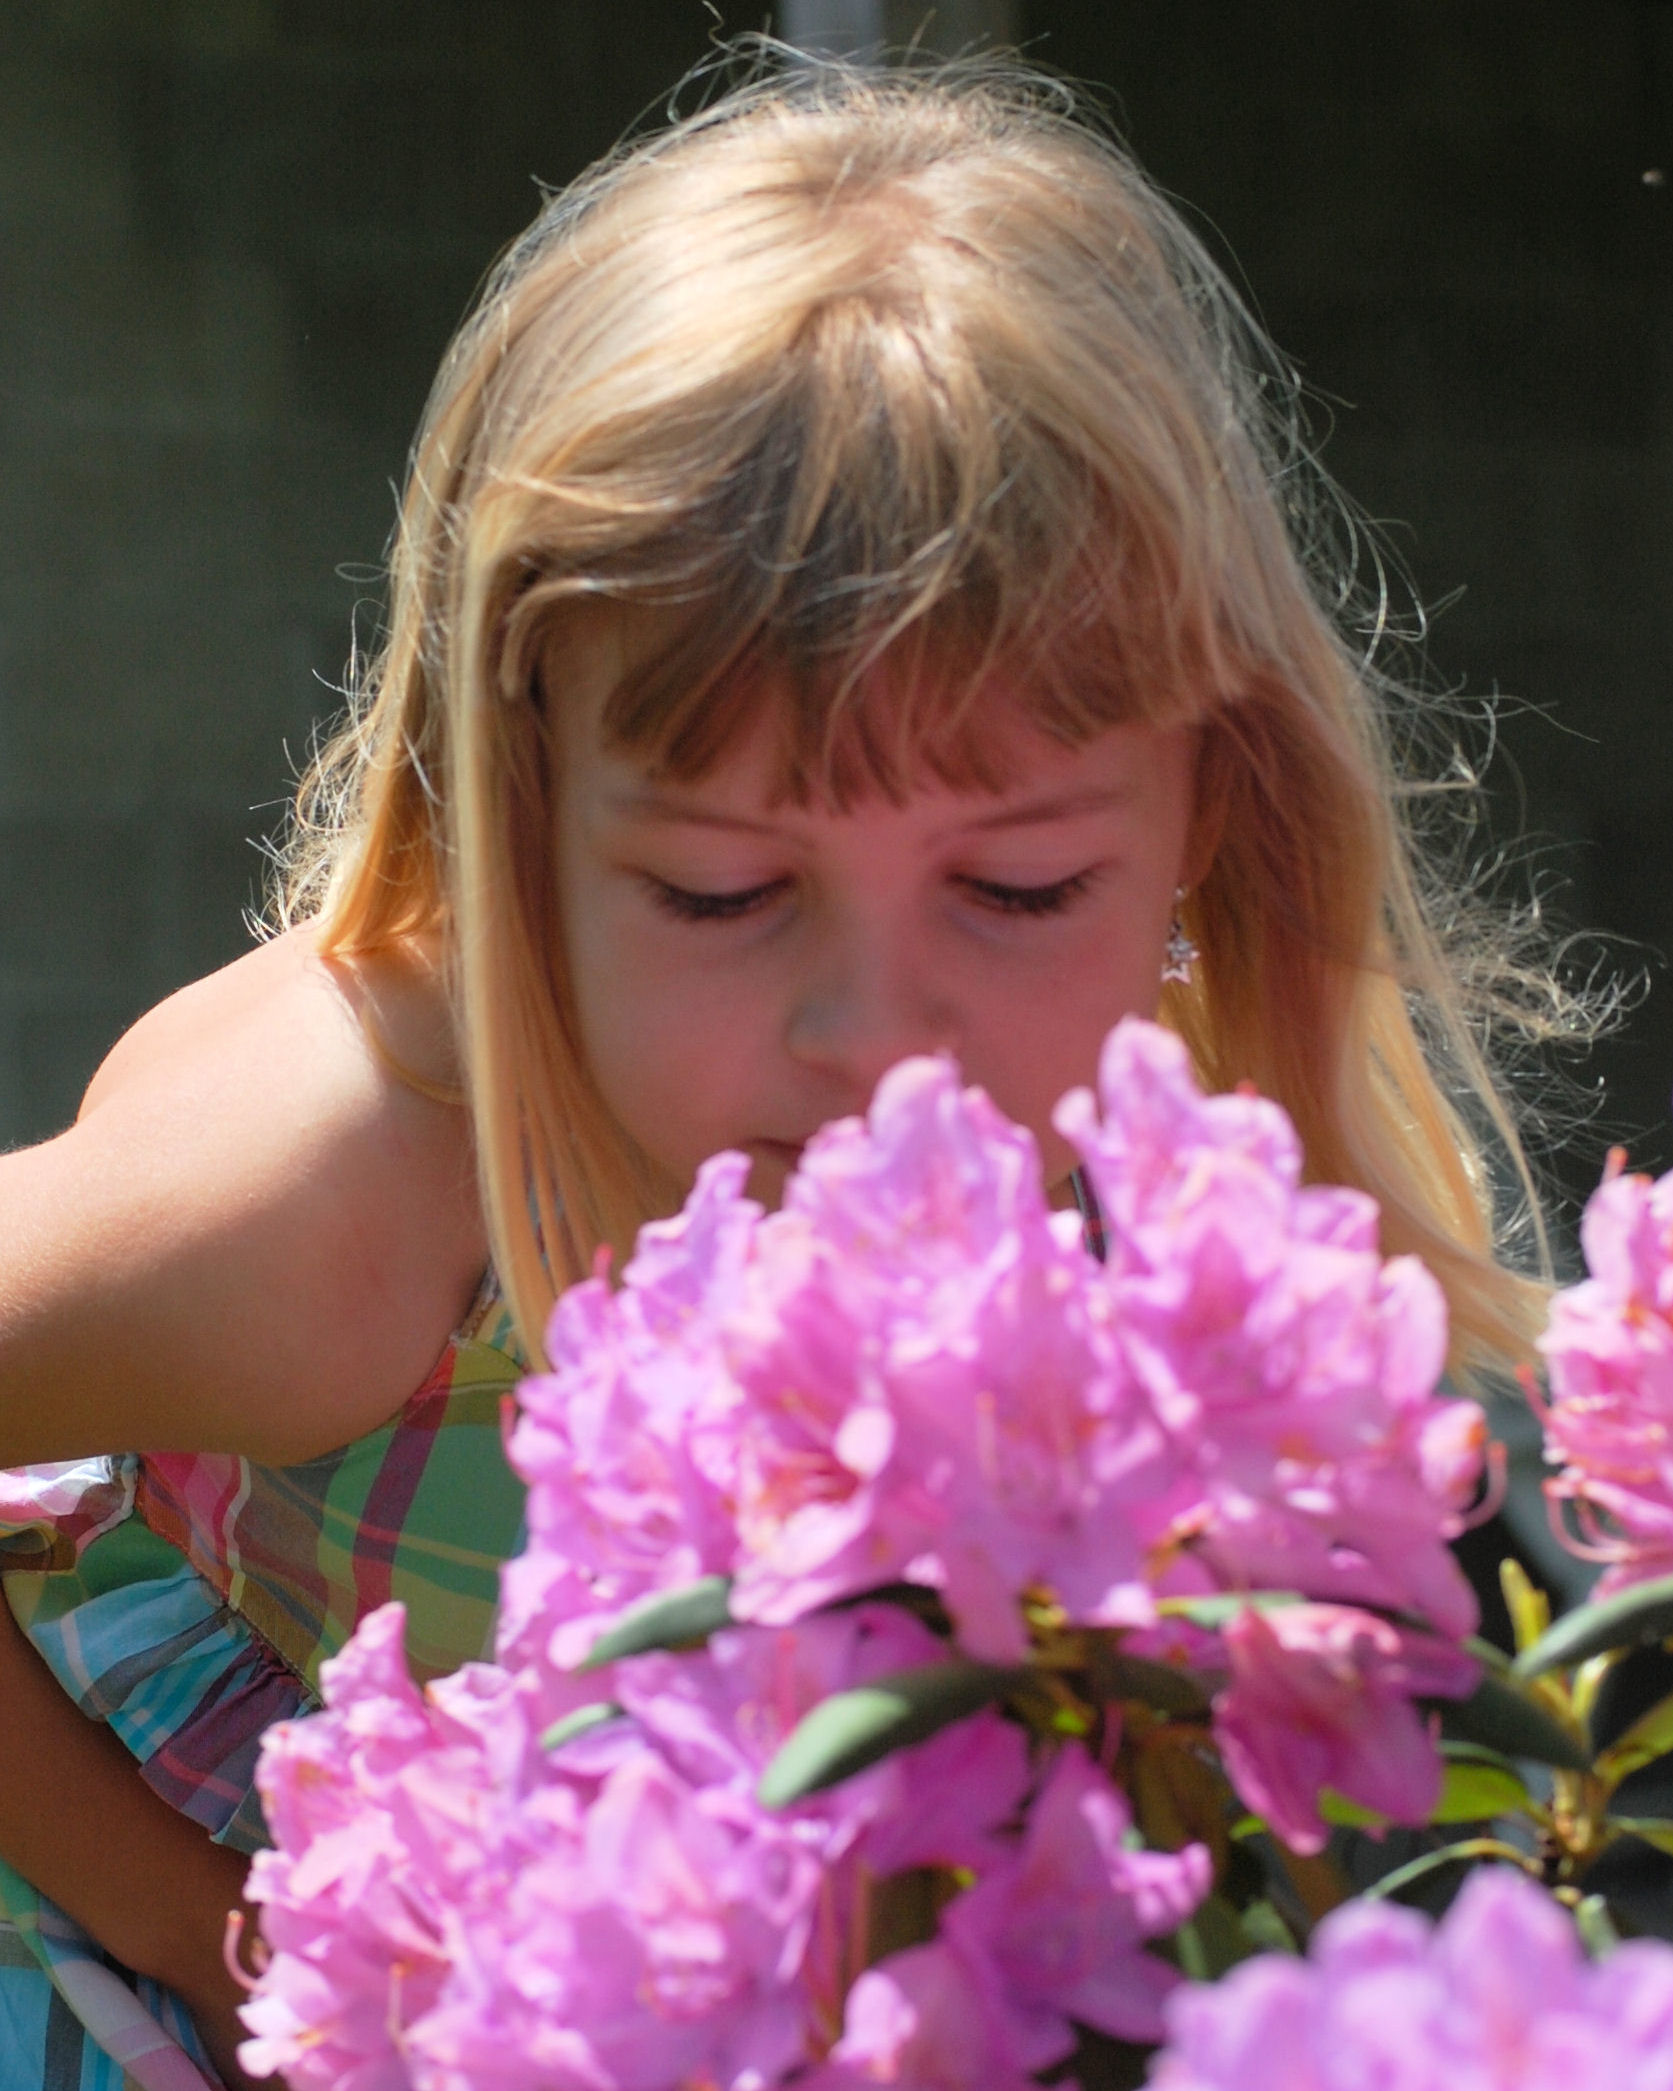 My little cousin Chloe takes a moment to stop and smell the flowers